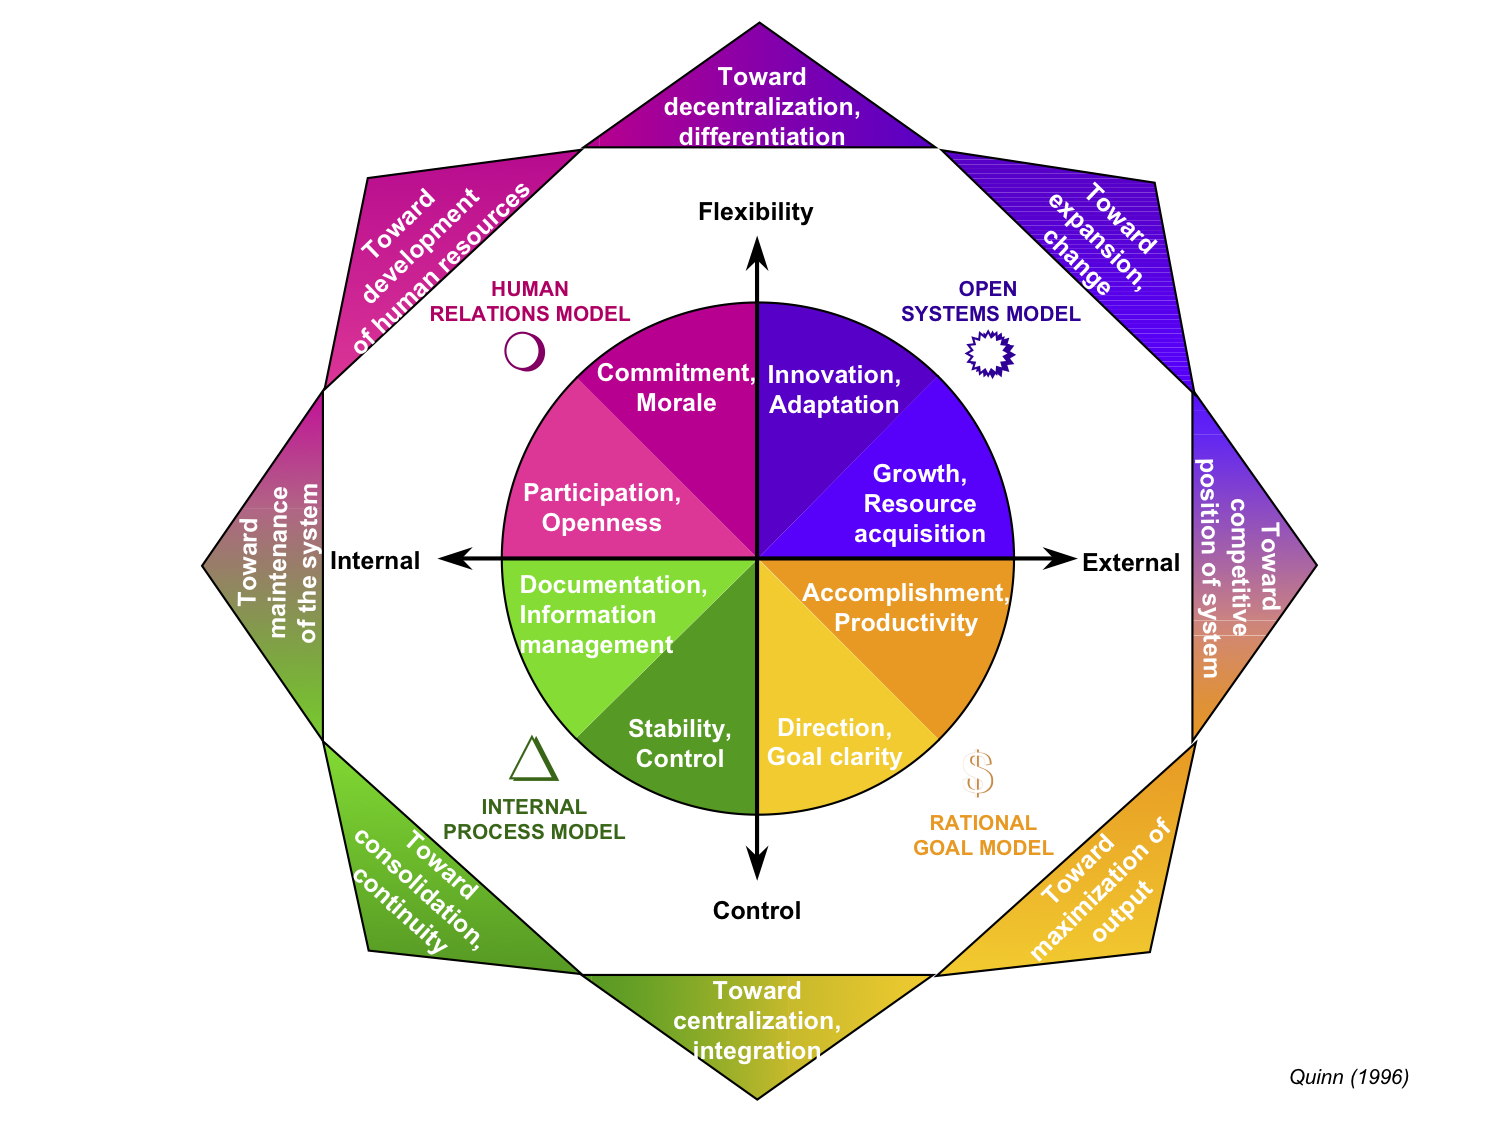 competing value framework An illustration of the competing values framework provides an illustration of the key values, leadership types, value drivers, approaches to change, and theories of effectiveness rm e te anc the competing values framework was developed initially from research conducted by.